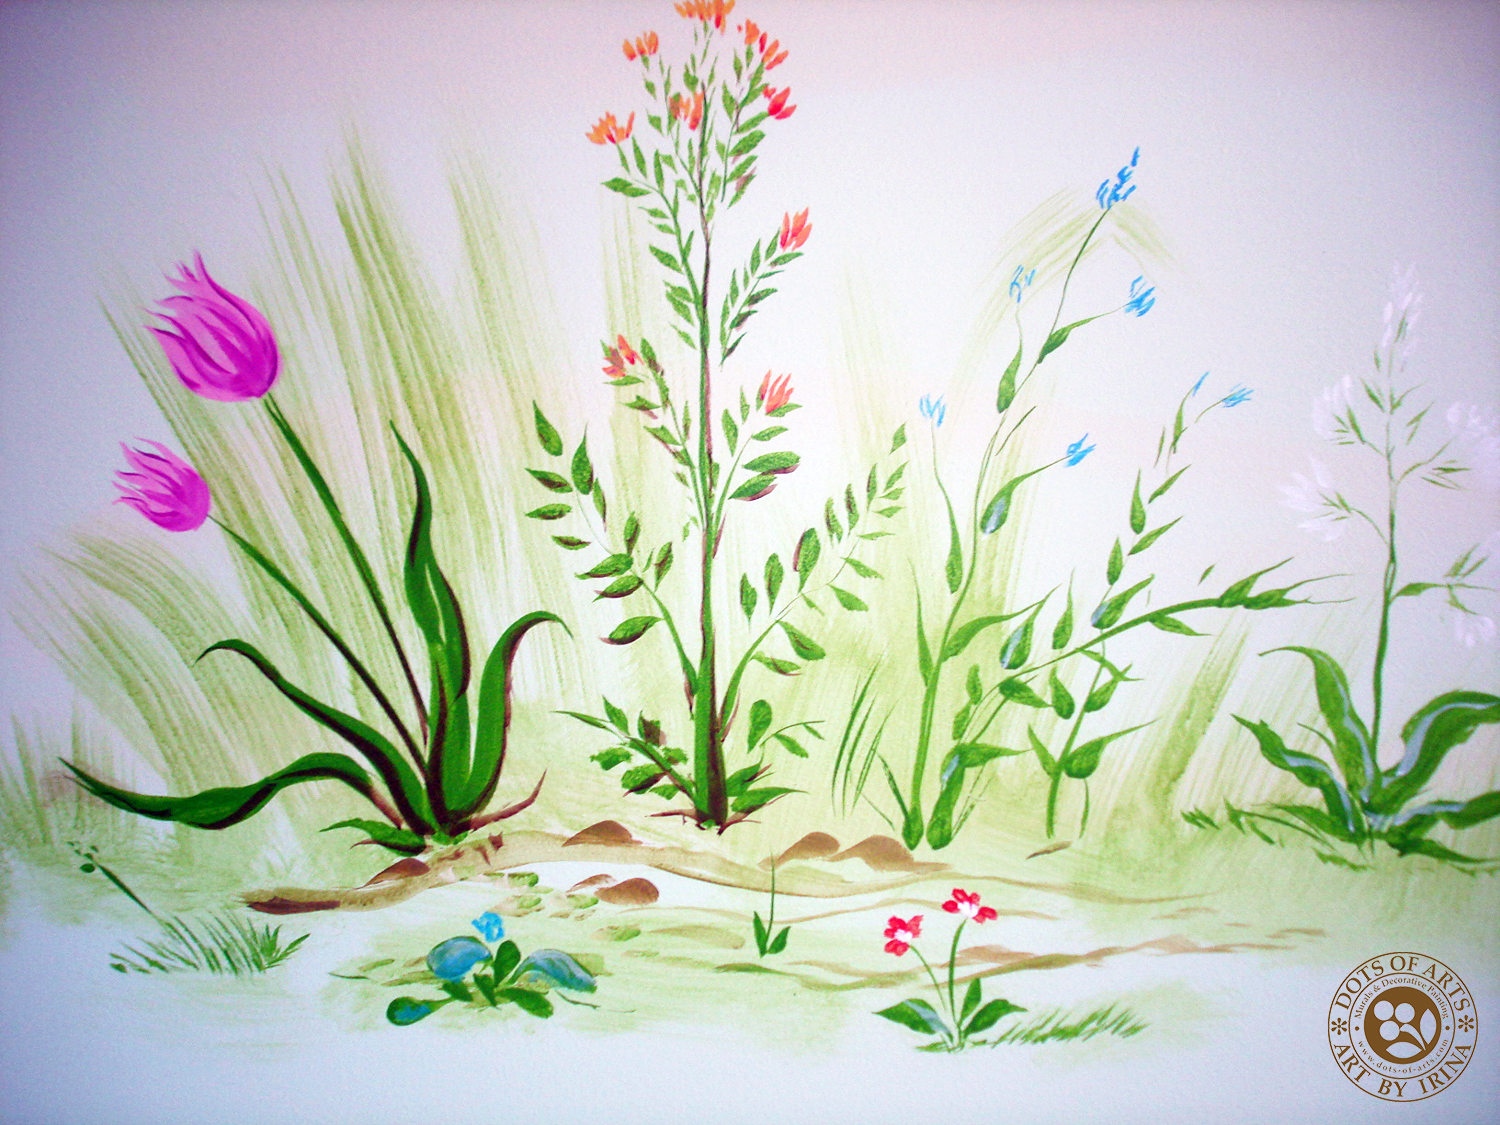 mural-custom-baby-room-farm-theme-clouds-wild-flowers-dots-of-arts-pink-tulips.jpg